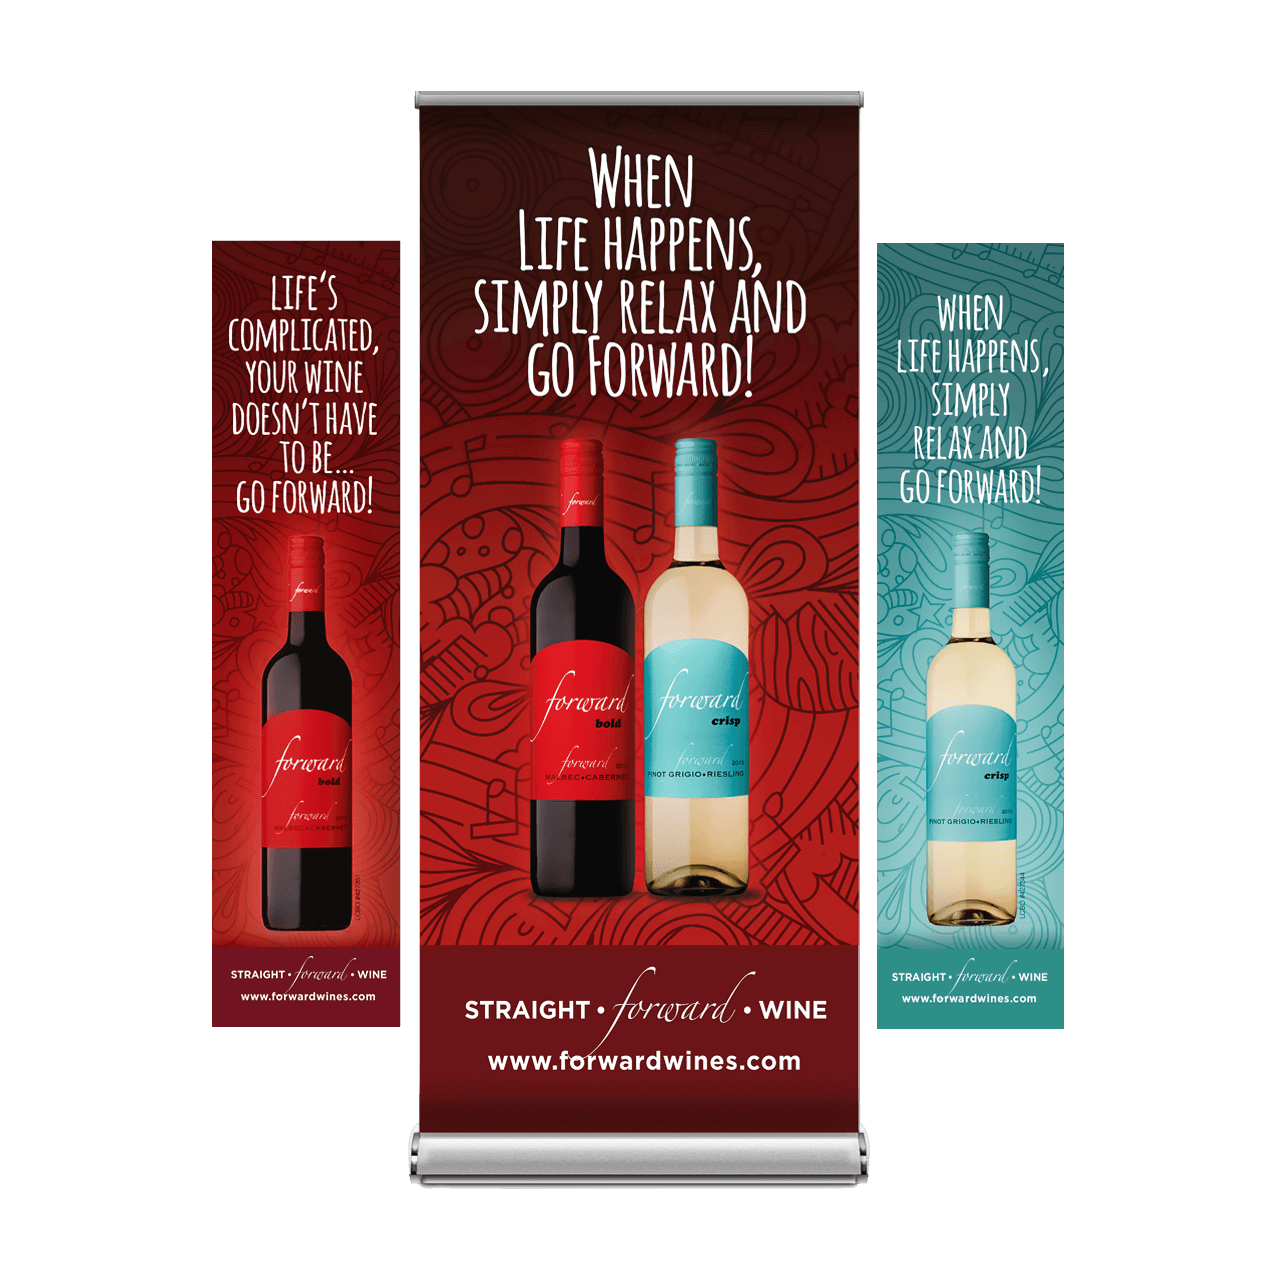 Forward Wines Banners- Peele Island Winery - BANG! creative strategy by design